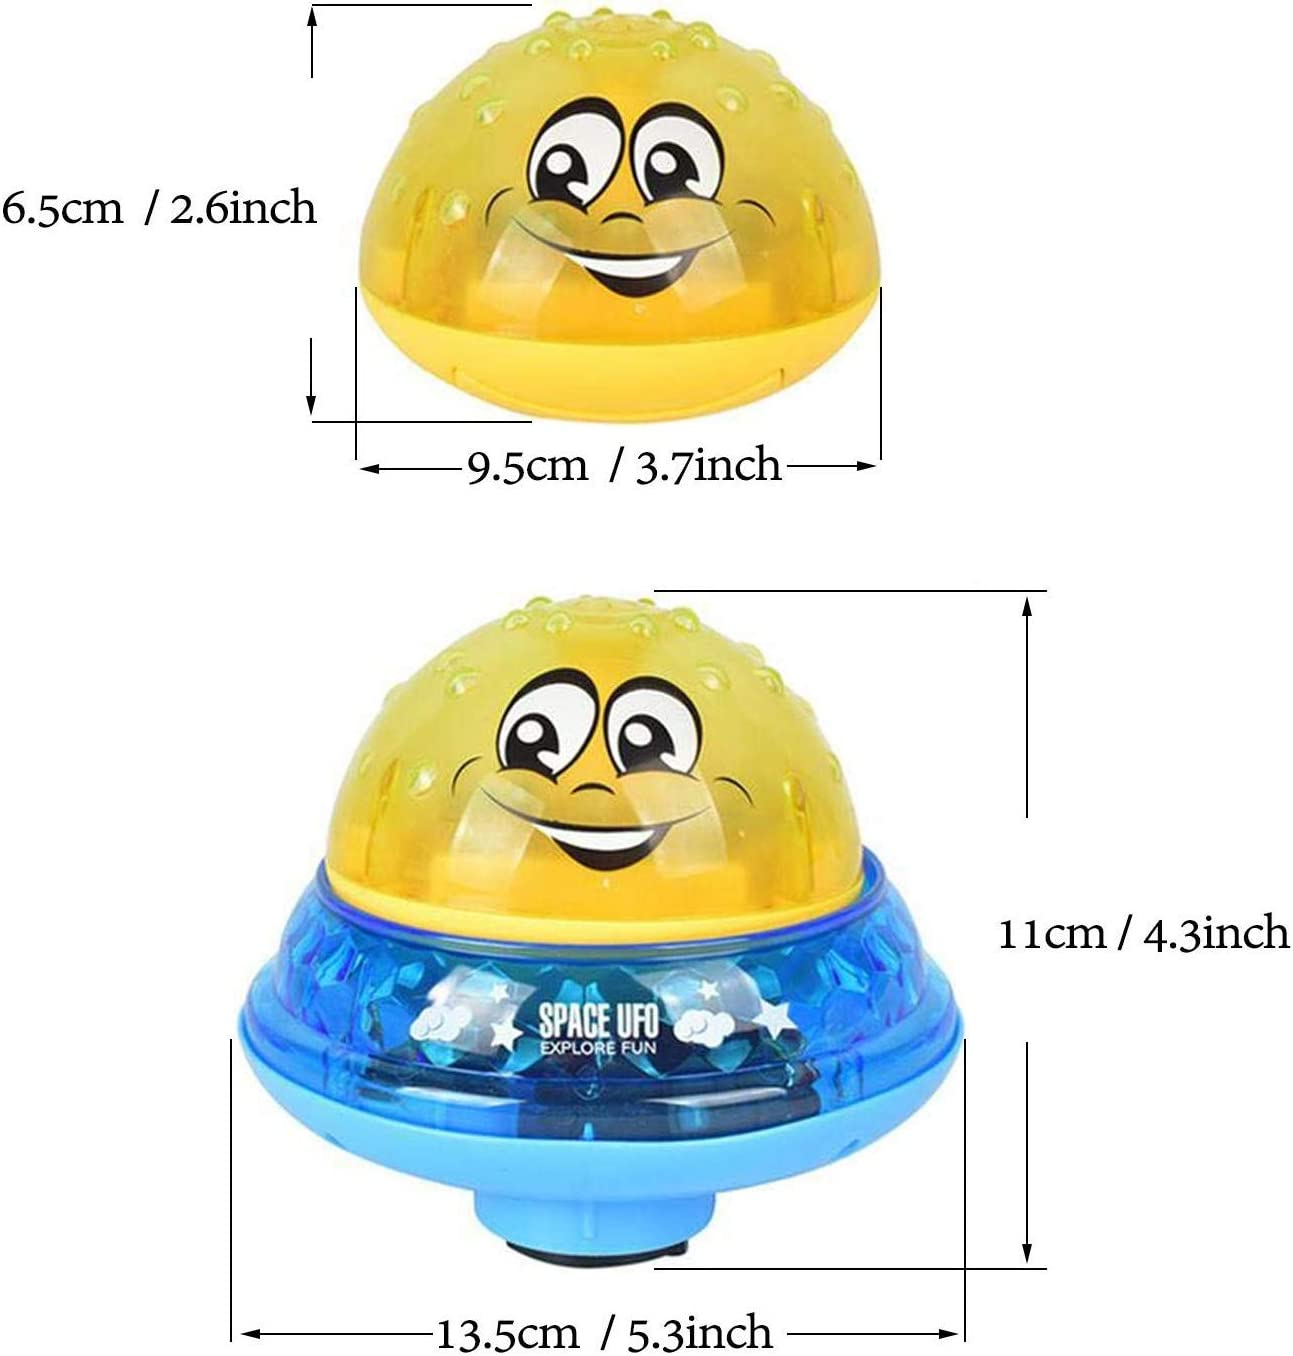 qingbao Bath Toys Bathroom Play Bath Spray Toys with Music /& Lamp Electric Automatic Induction Bathing Water Toy Yellow + Blue Base